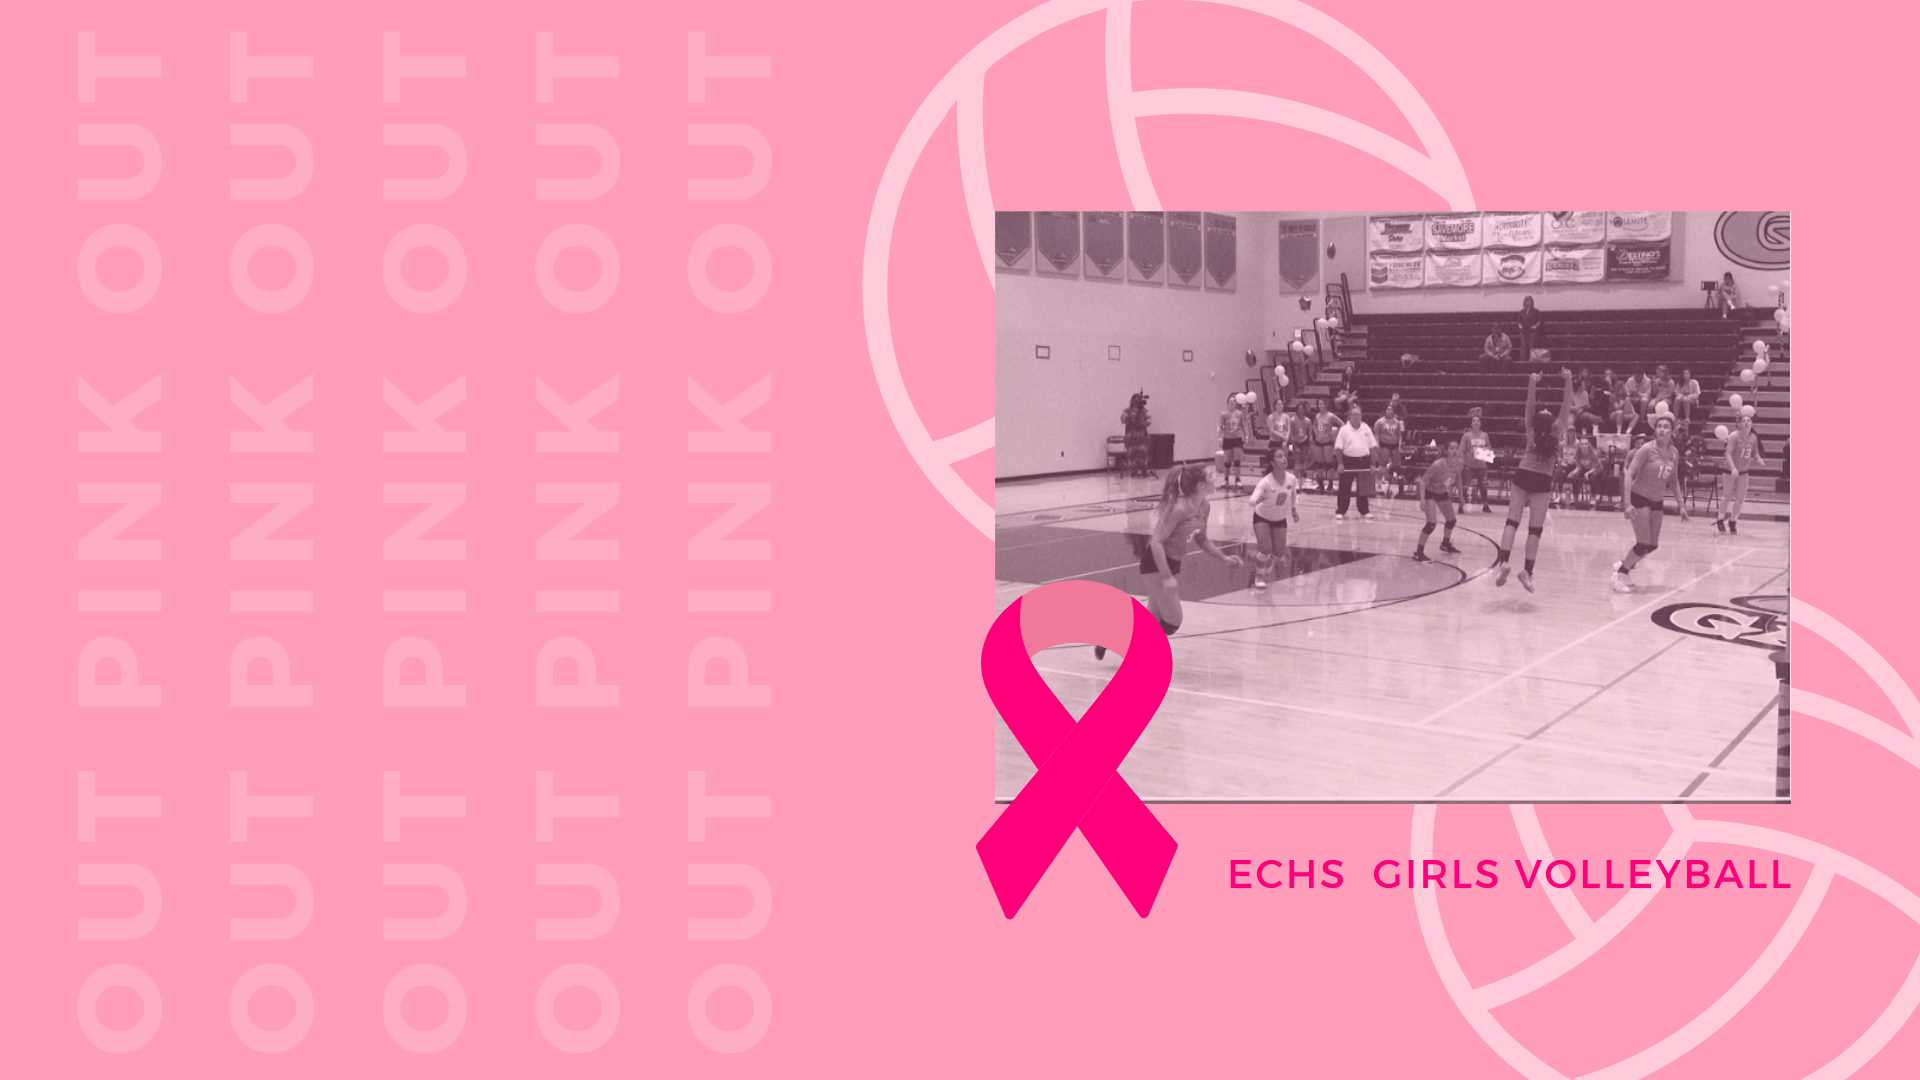 It's Pink Out Time! The Girls Volleyball game against Merced High School and a reflection on the overall season